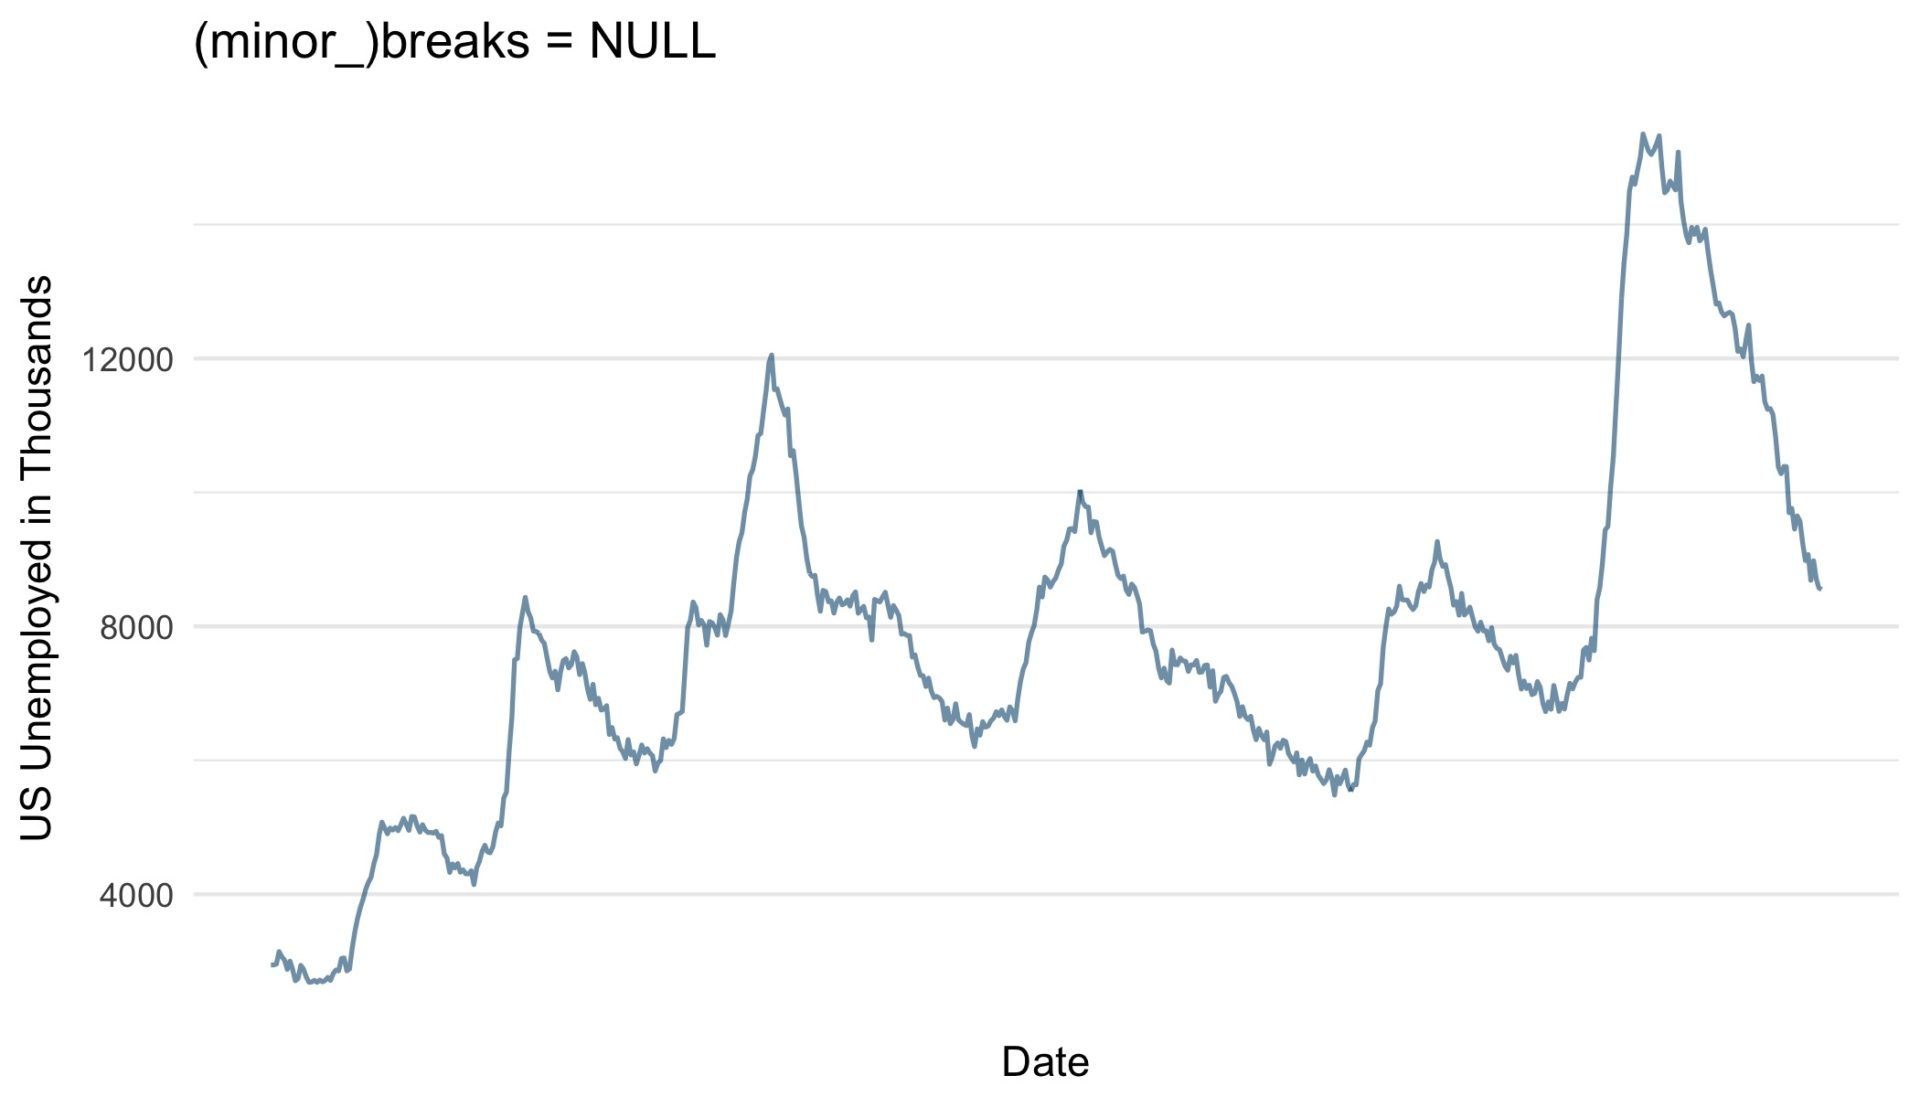 ggplot-breaks-NULL